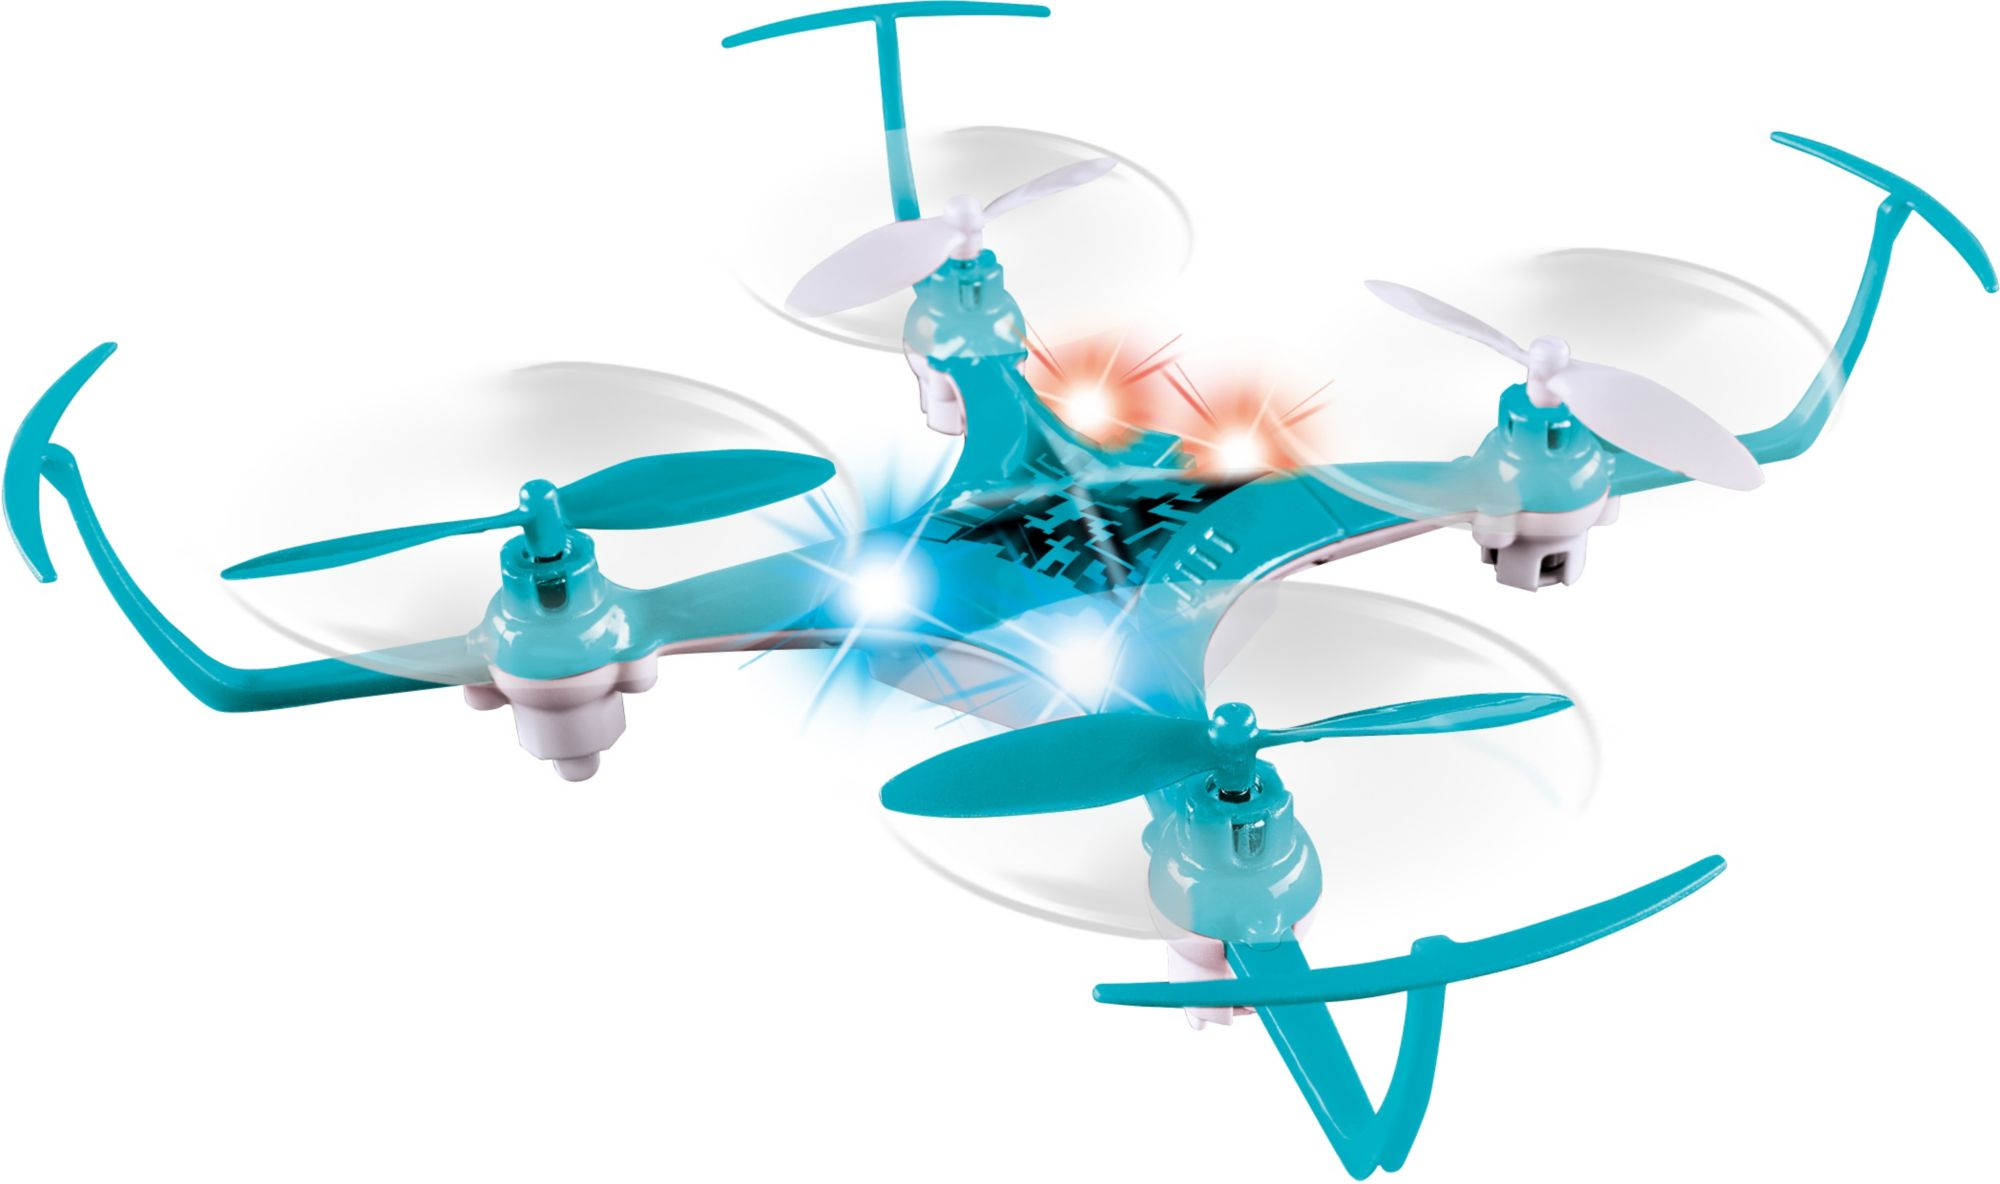 DICKIE TOYS Dickie Toys RC Quadrocopter, »DT-H2 Backflip«